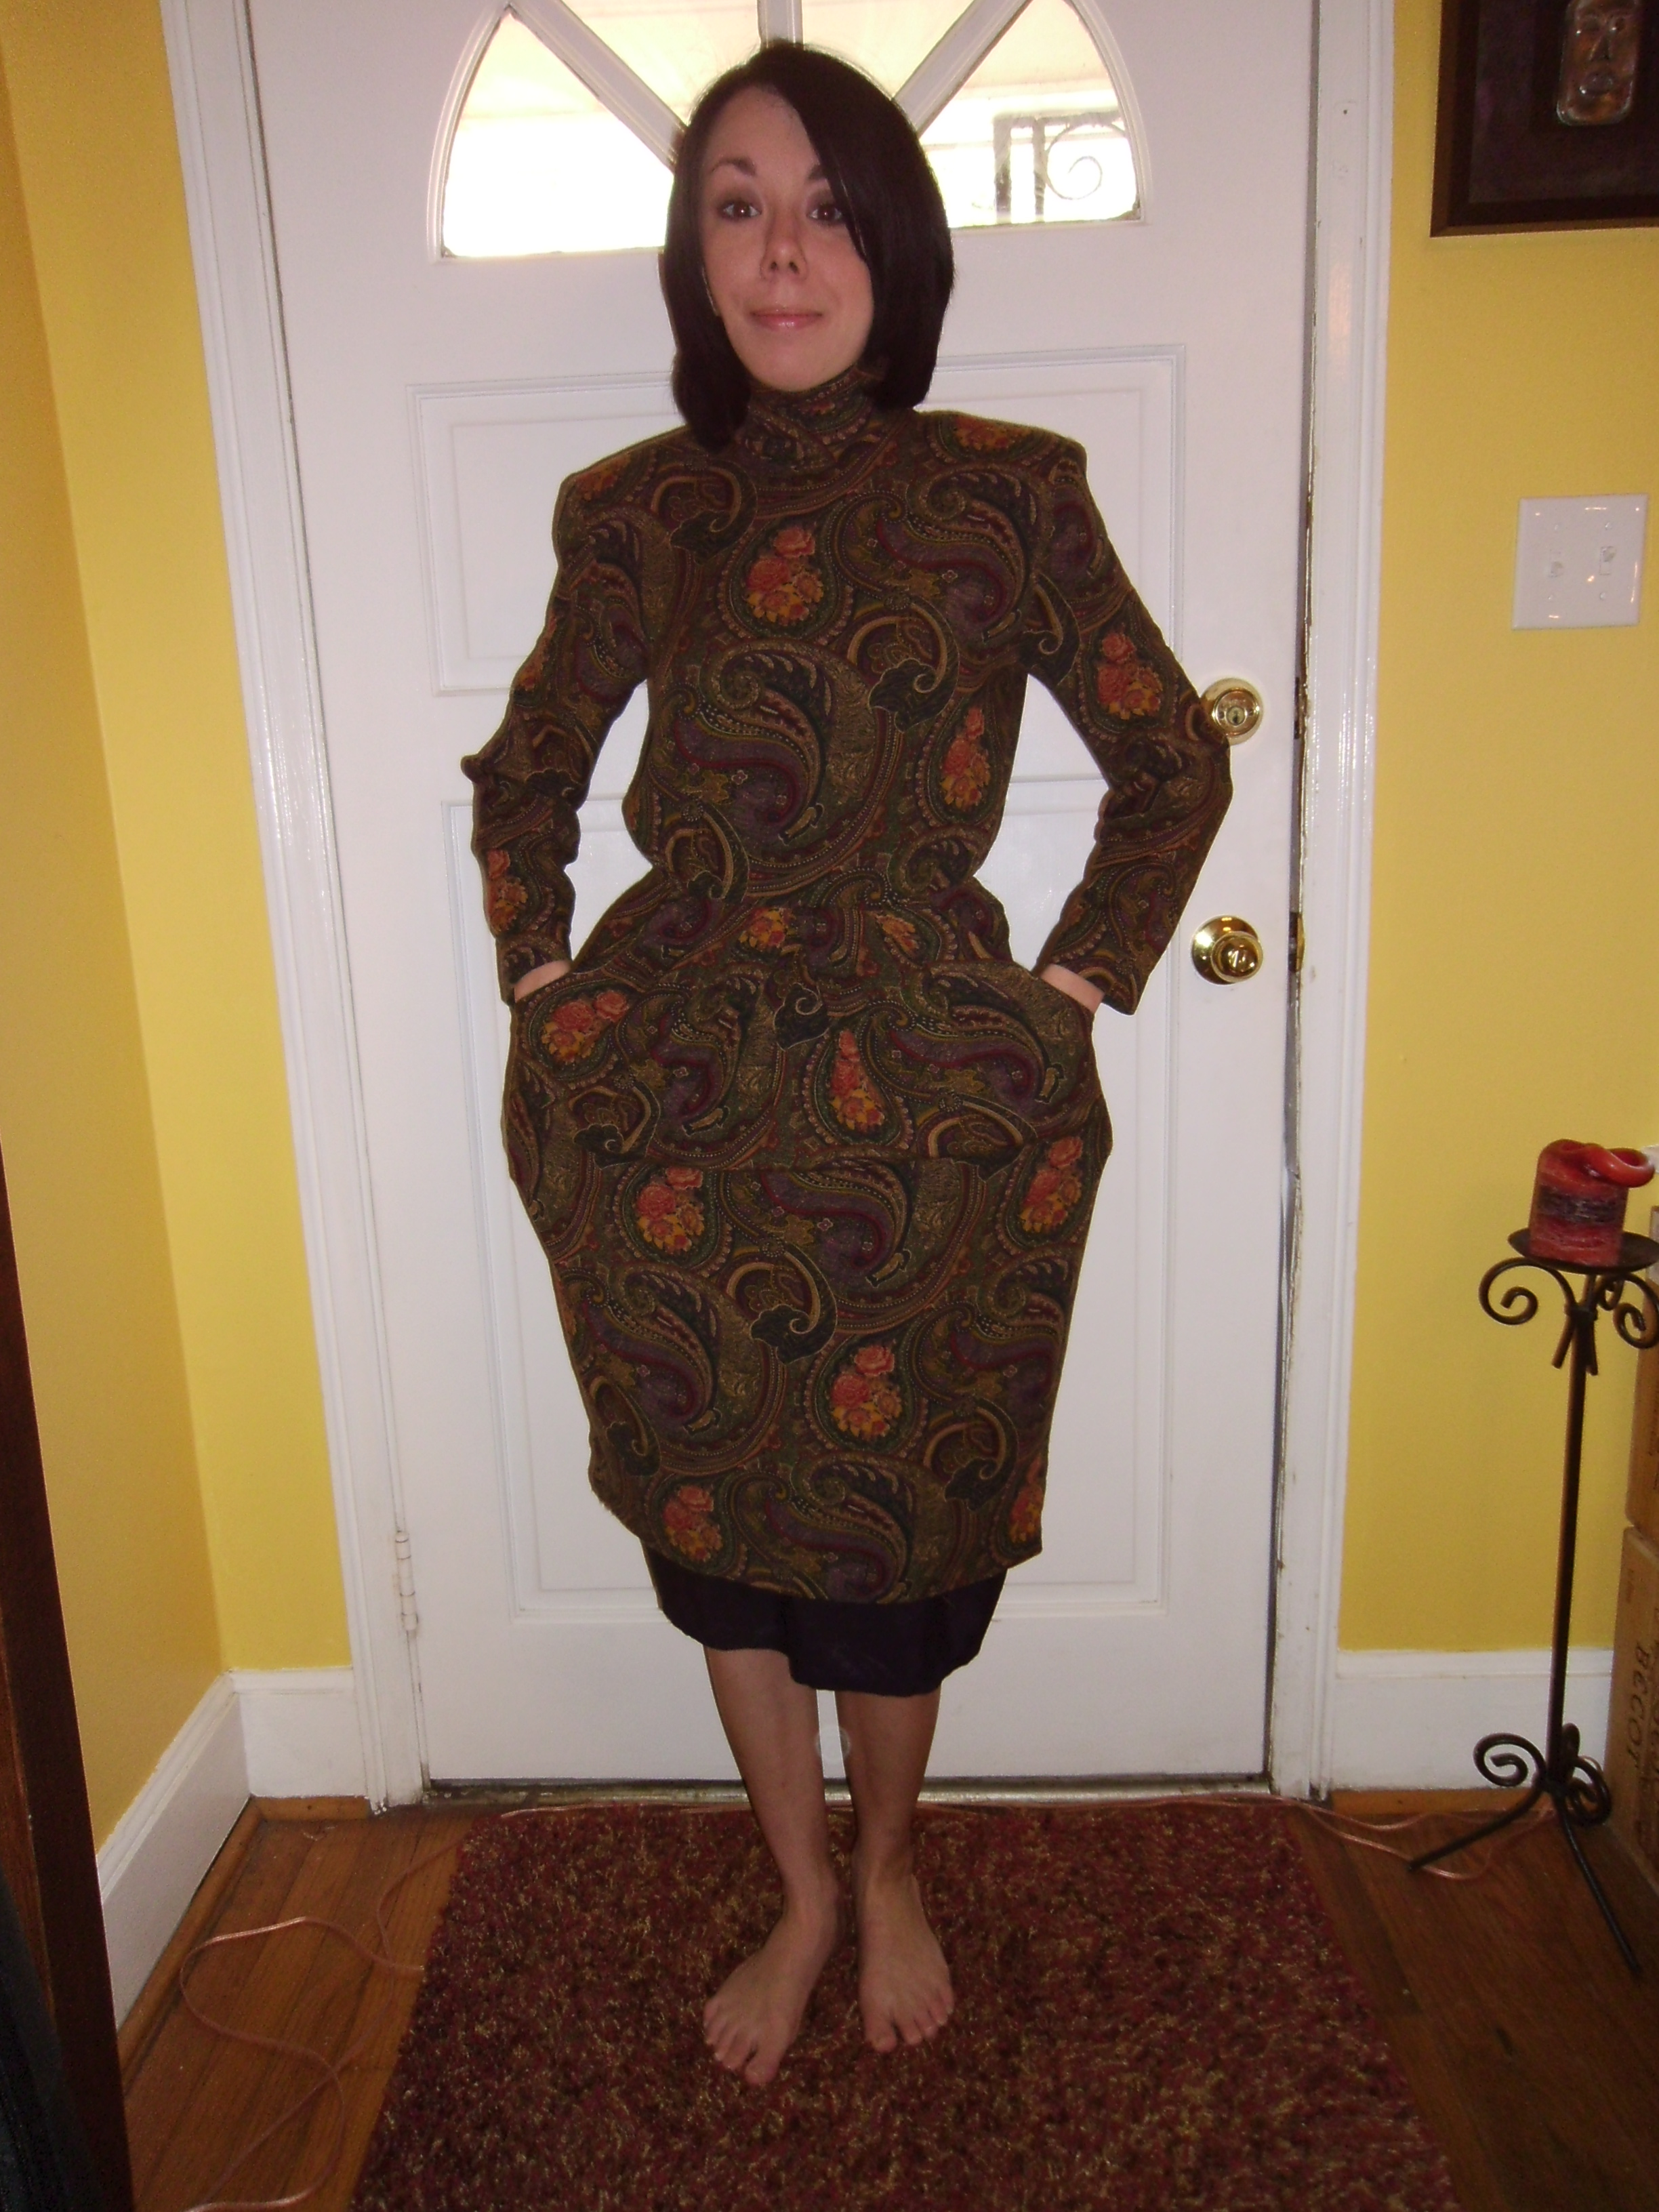 Day 198: Plucky in Paisley Dress 2